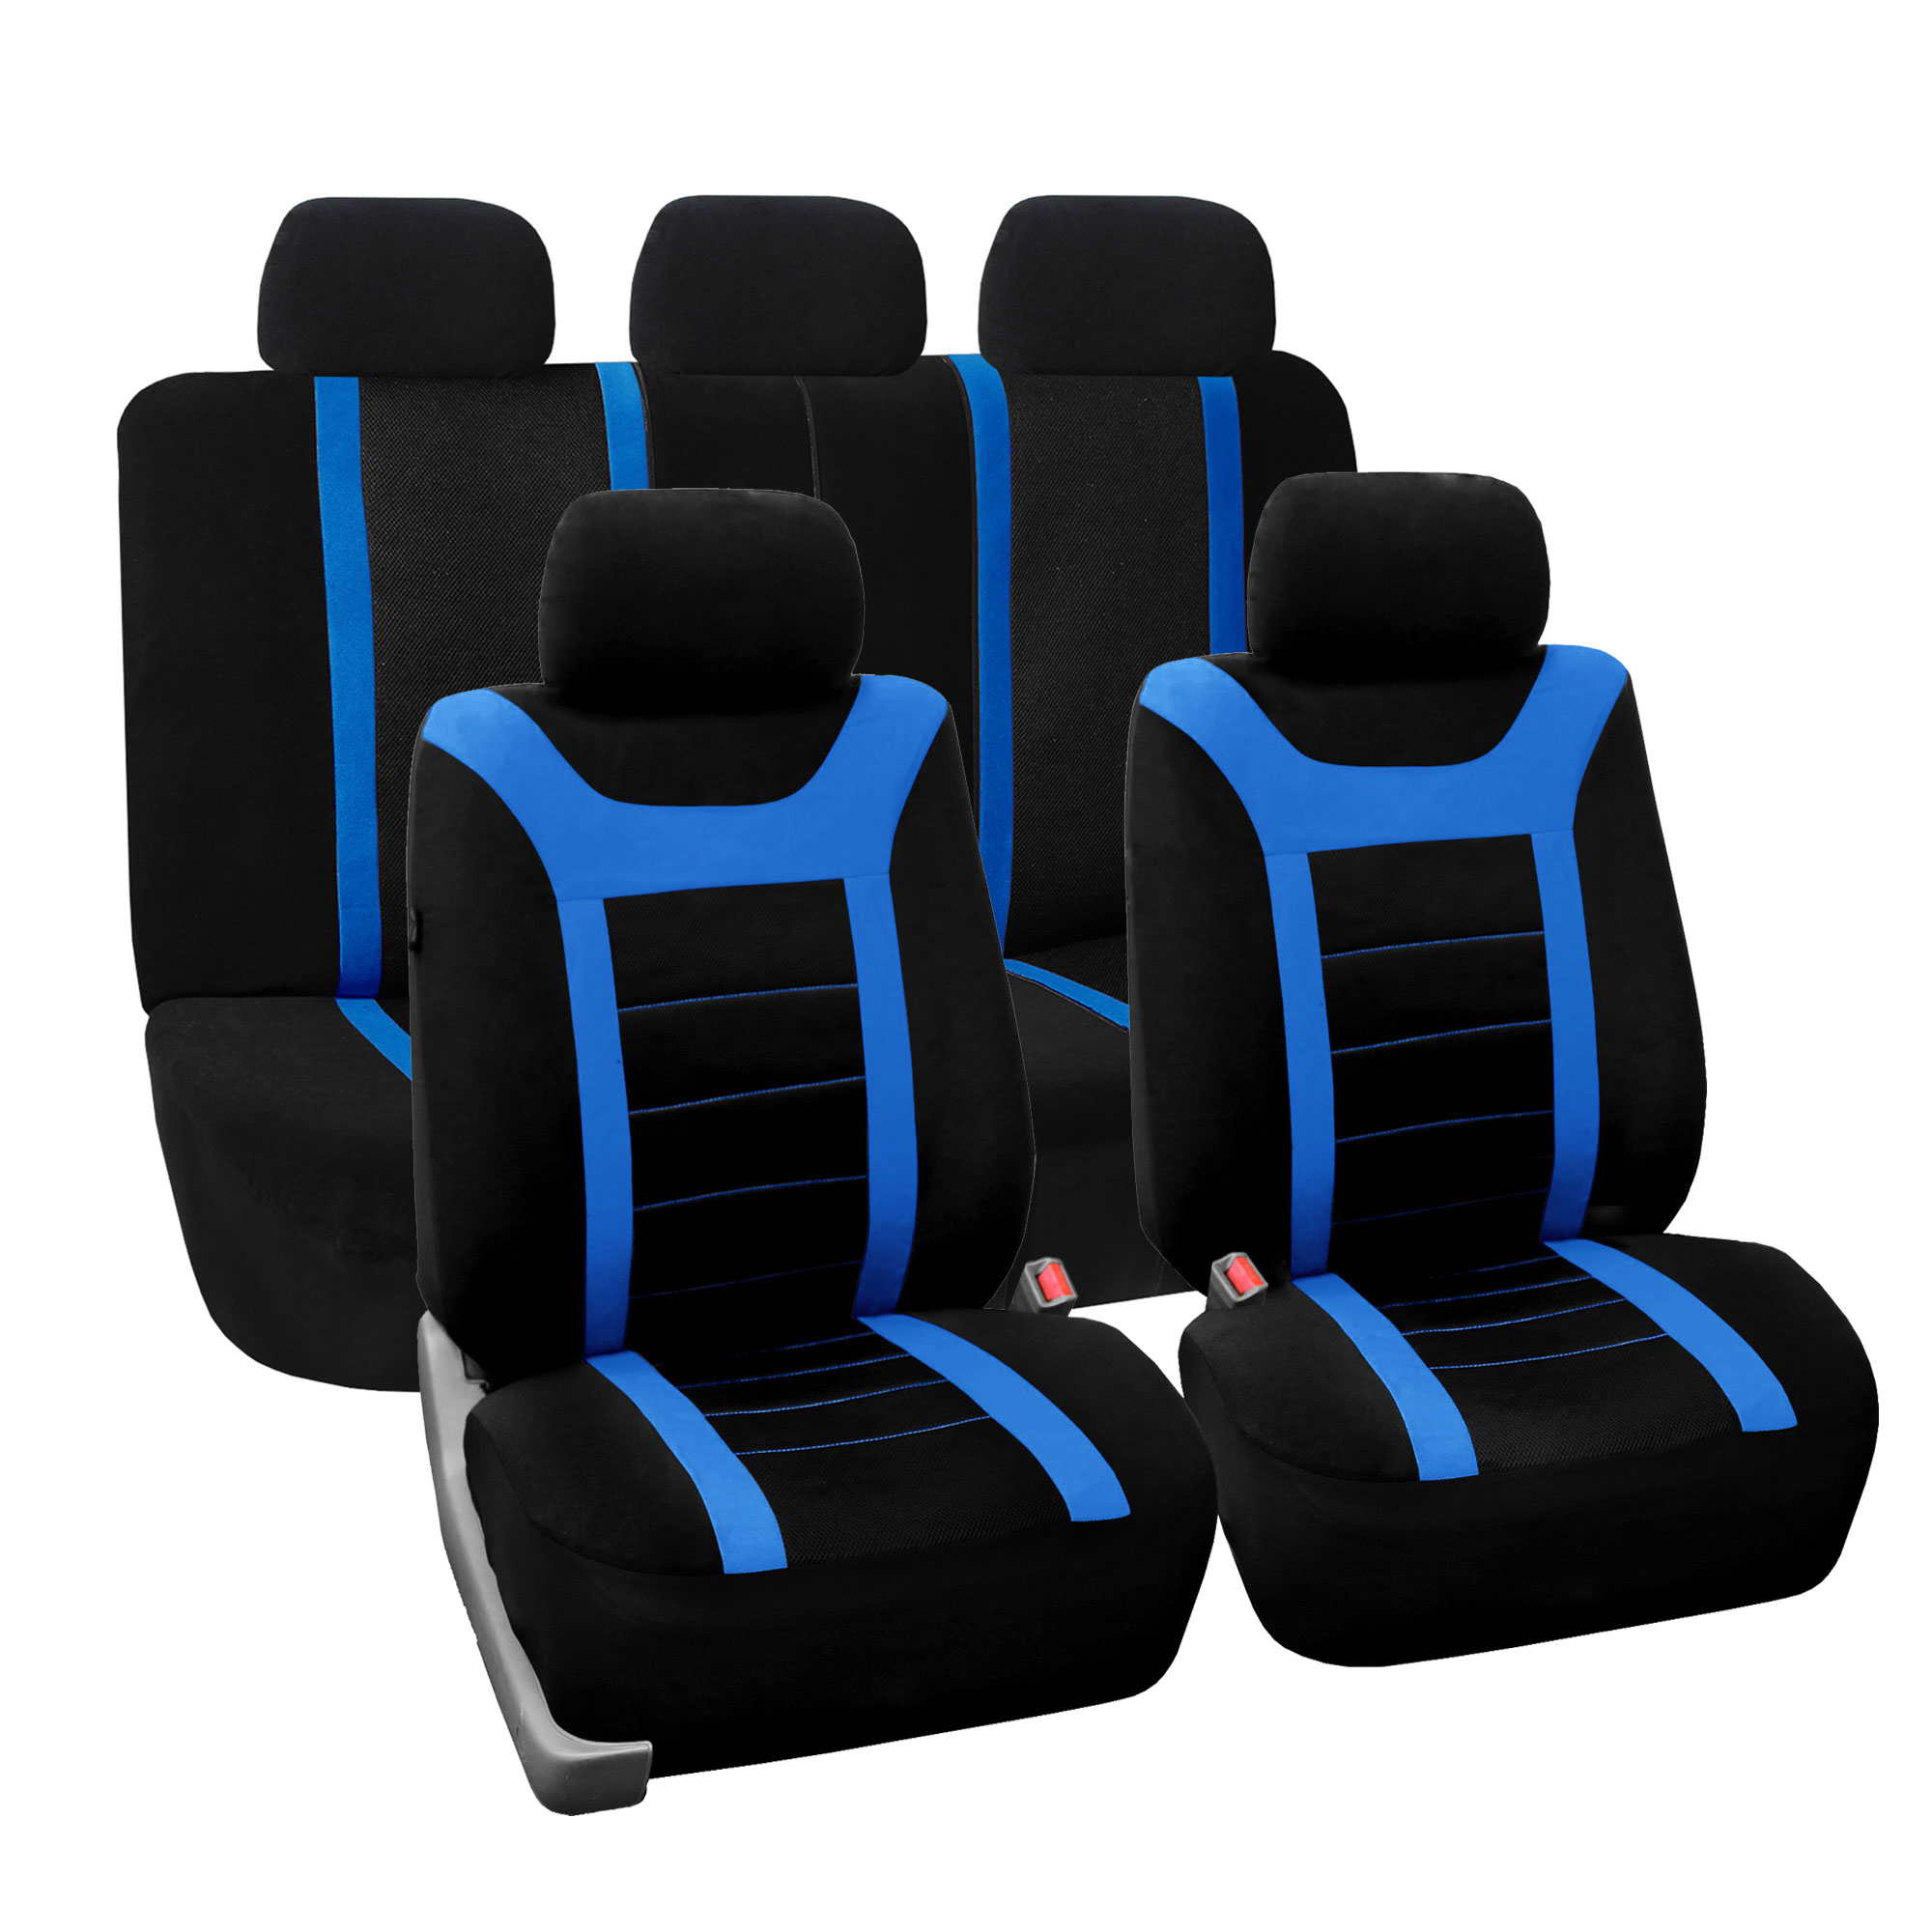 FH Group Blue and Black Airbag Compatible and Split Bench Sports Car Seat Cover, Full Set